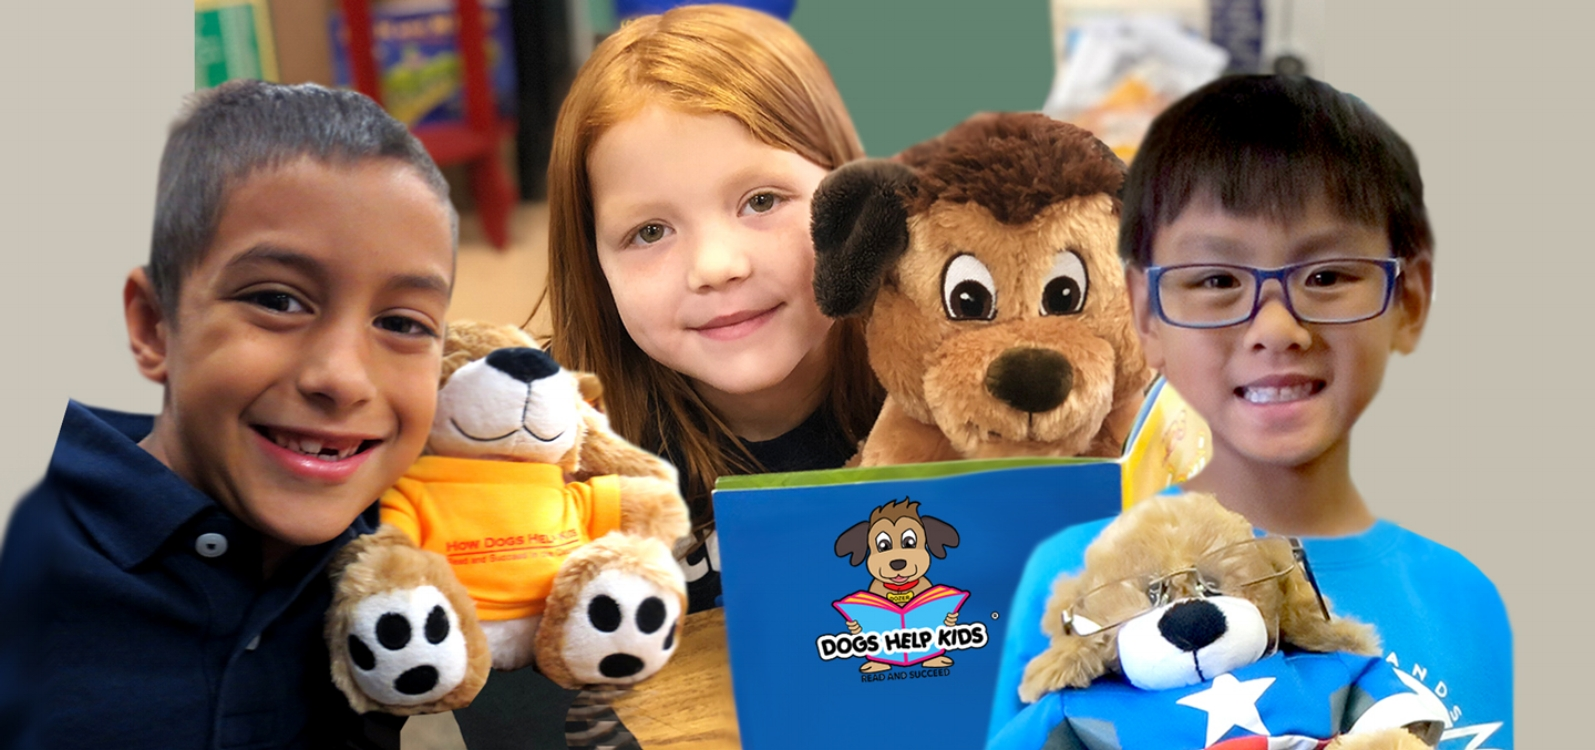 Help Kids Dogs Help Kids Read And Succeed